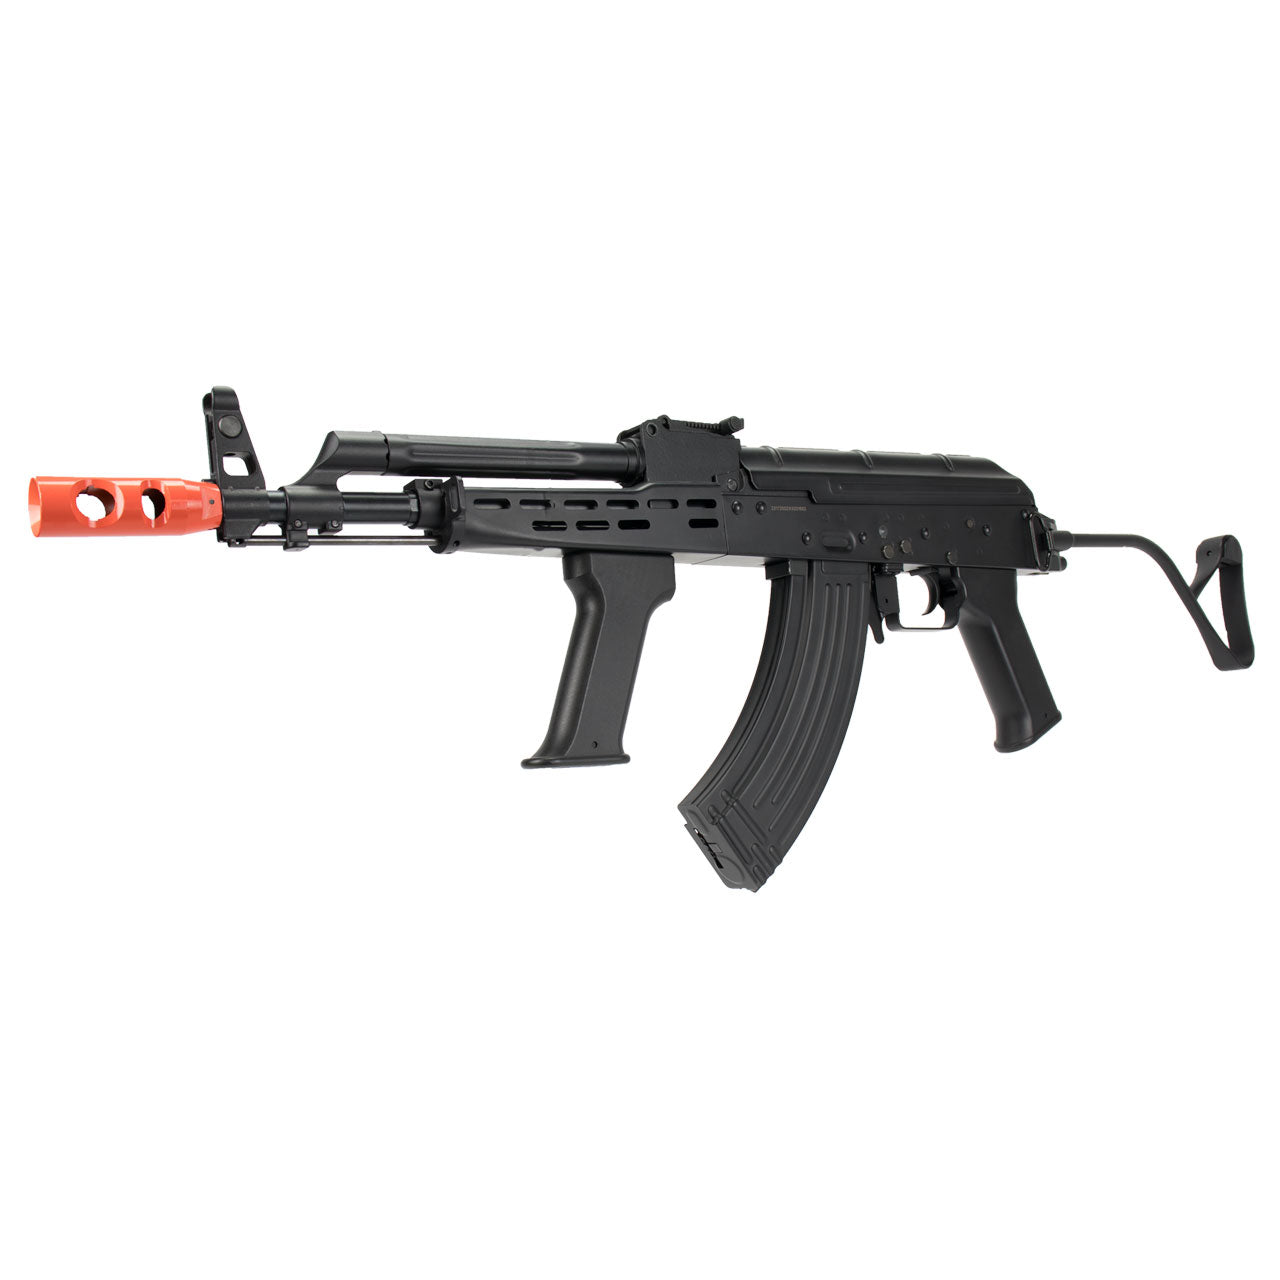 GE/JG Full Metal AK AMD-65 Airsoft AEG Rifle w/ Lipo Ready Gearbox